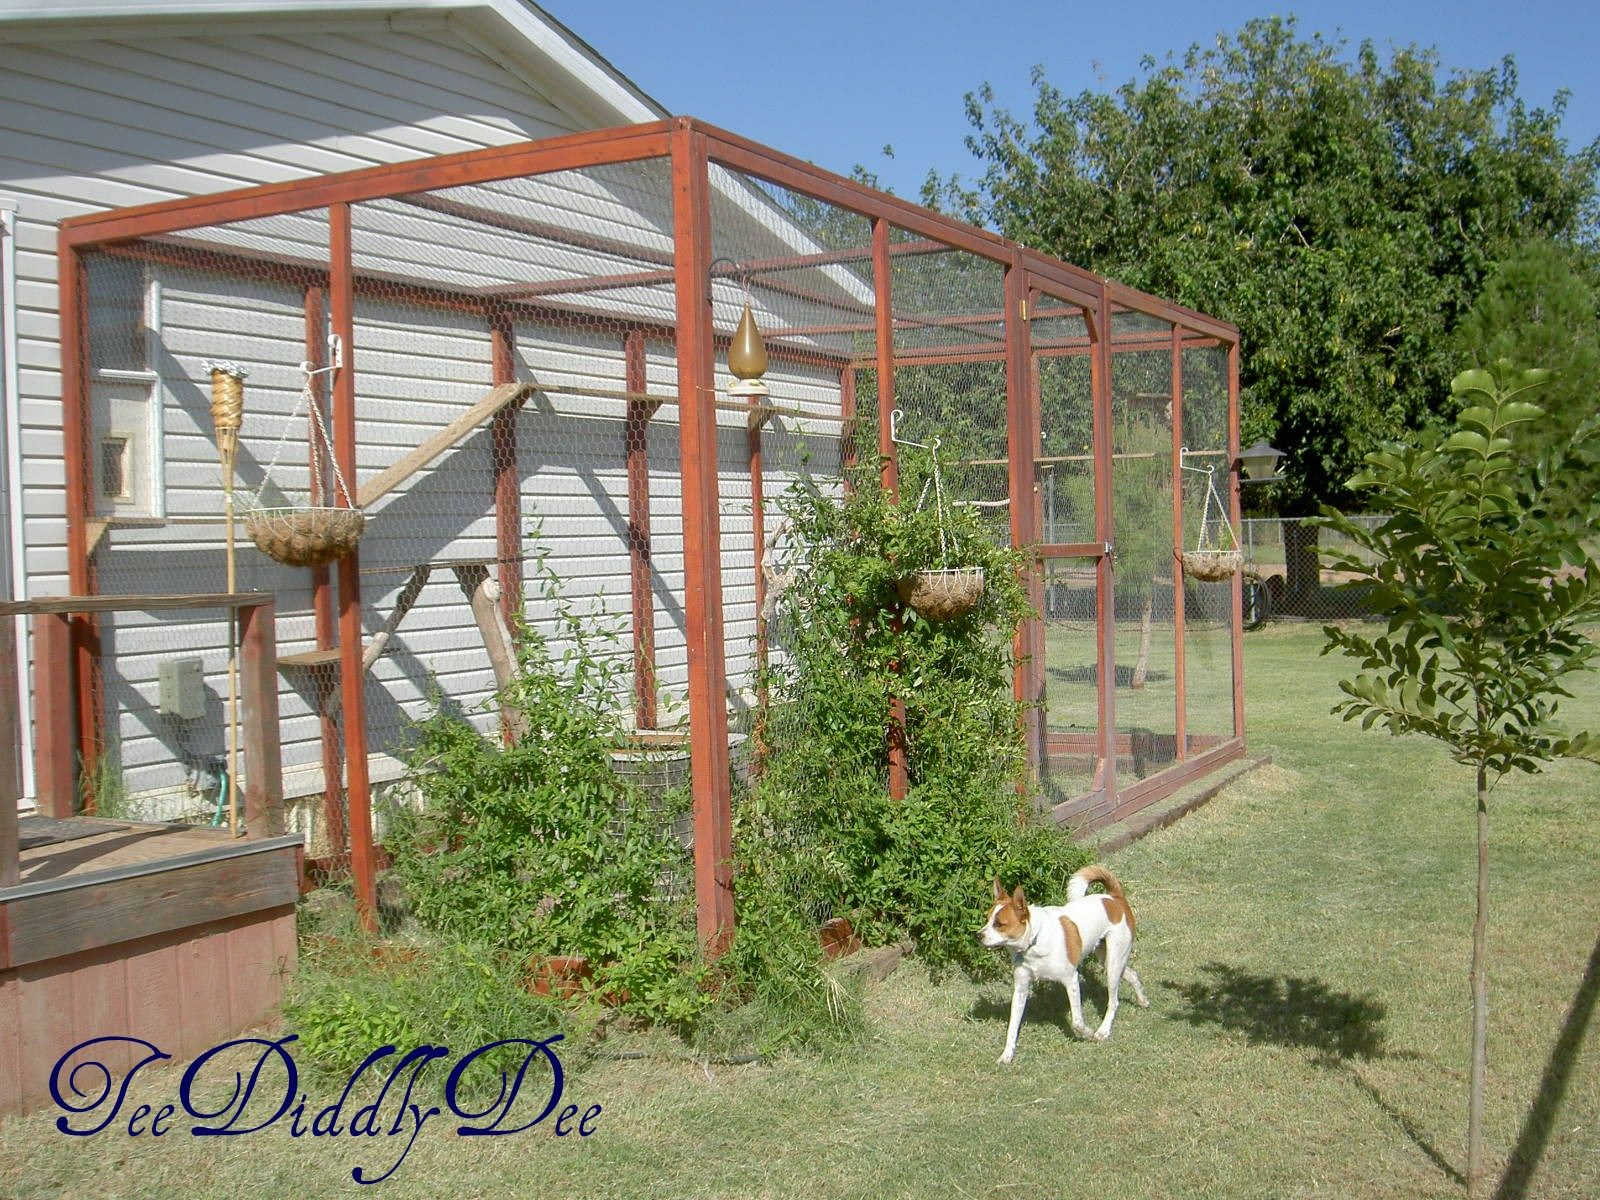 How To Build An Outdoor Cat Enclosure or Catio | TeeDiddlyDee